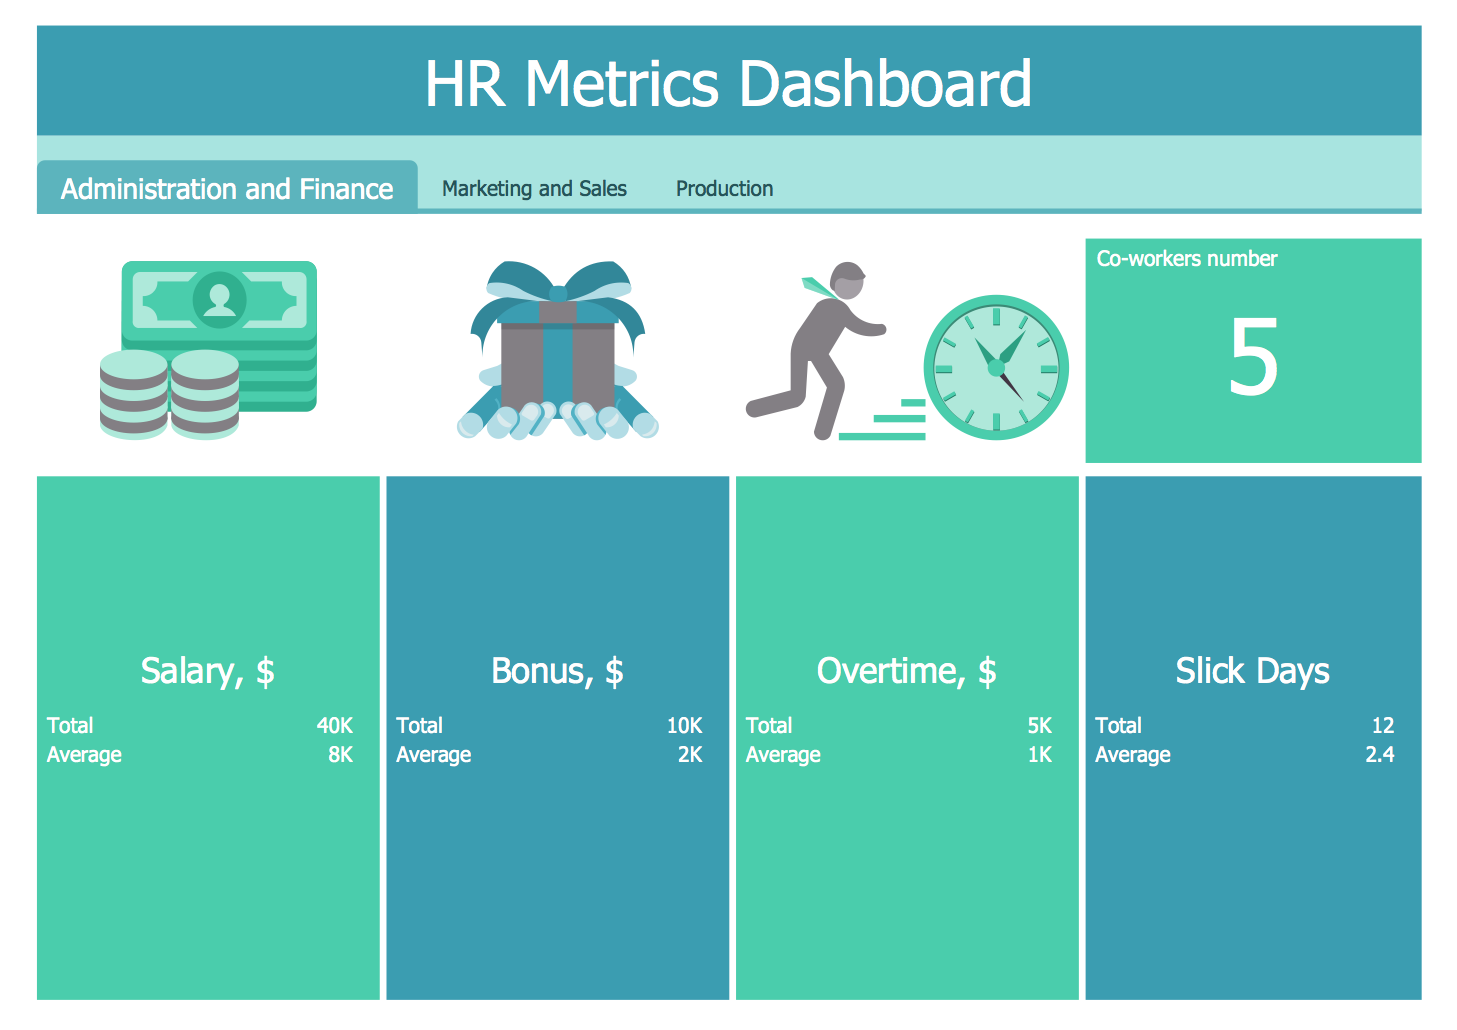 HR Metrics Dashboard